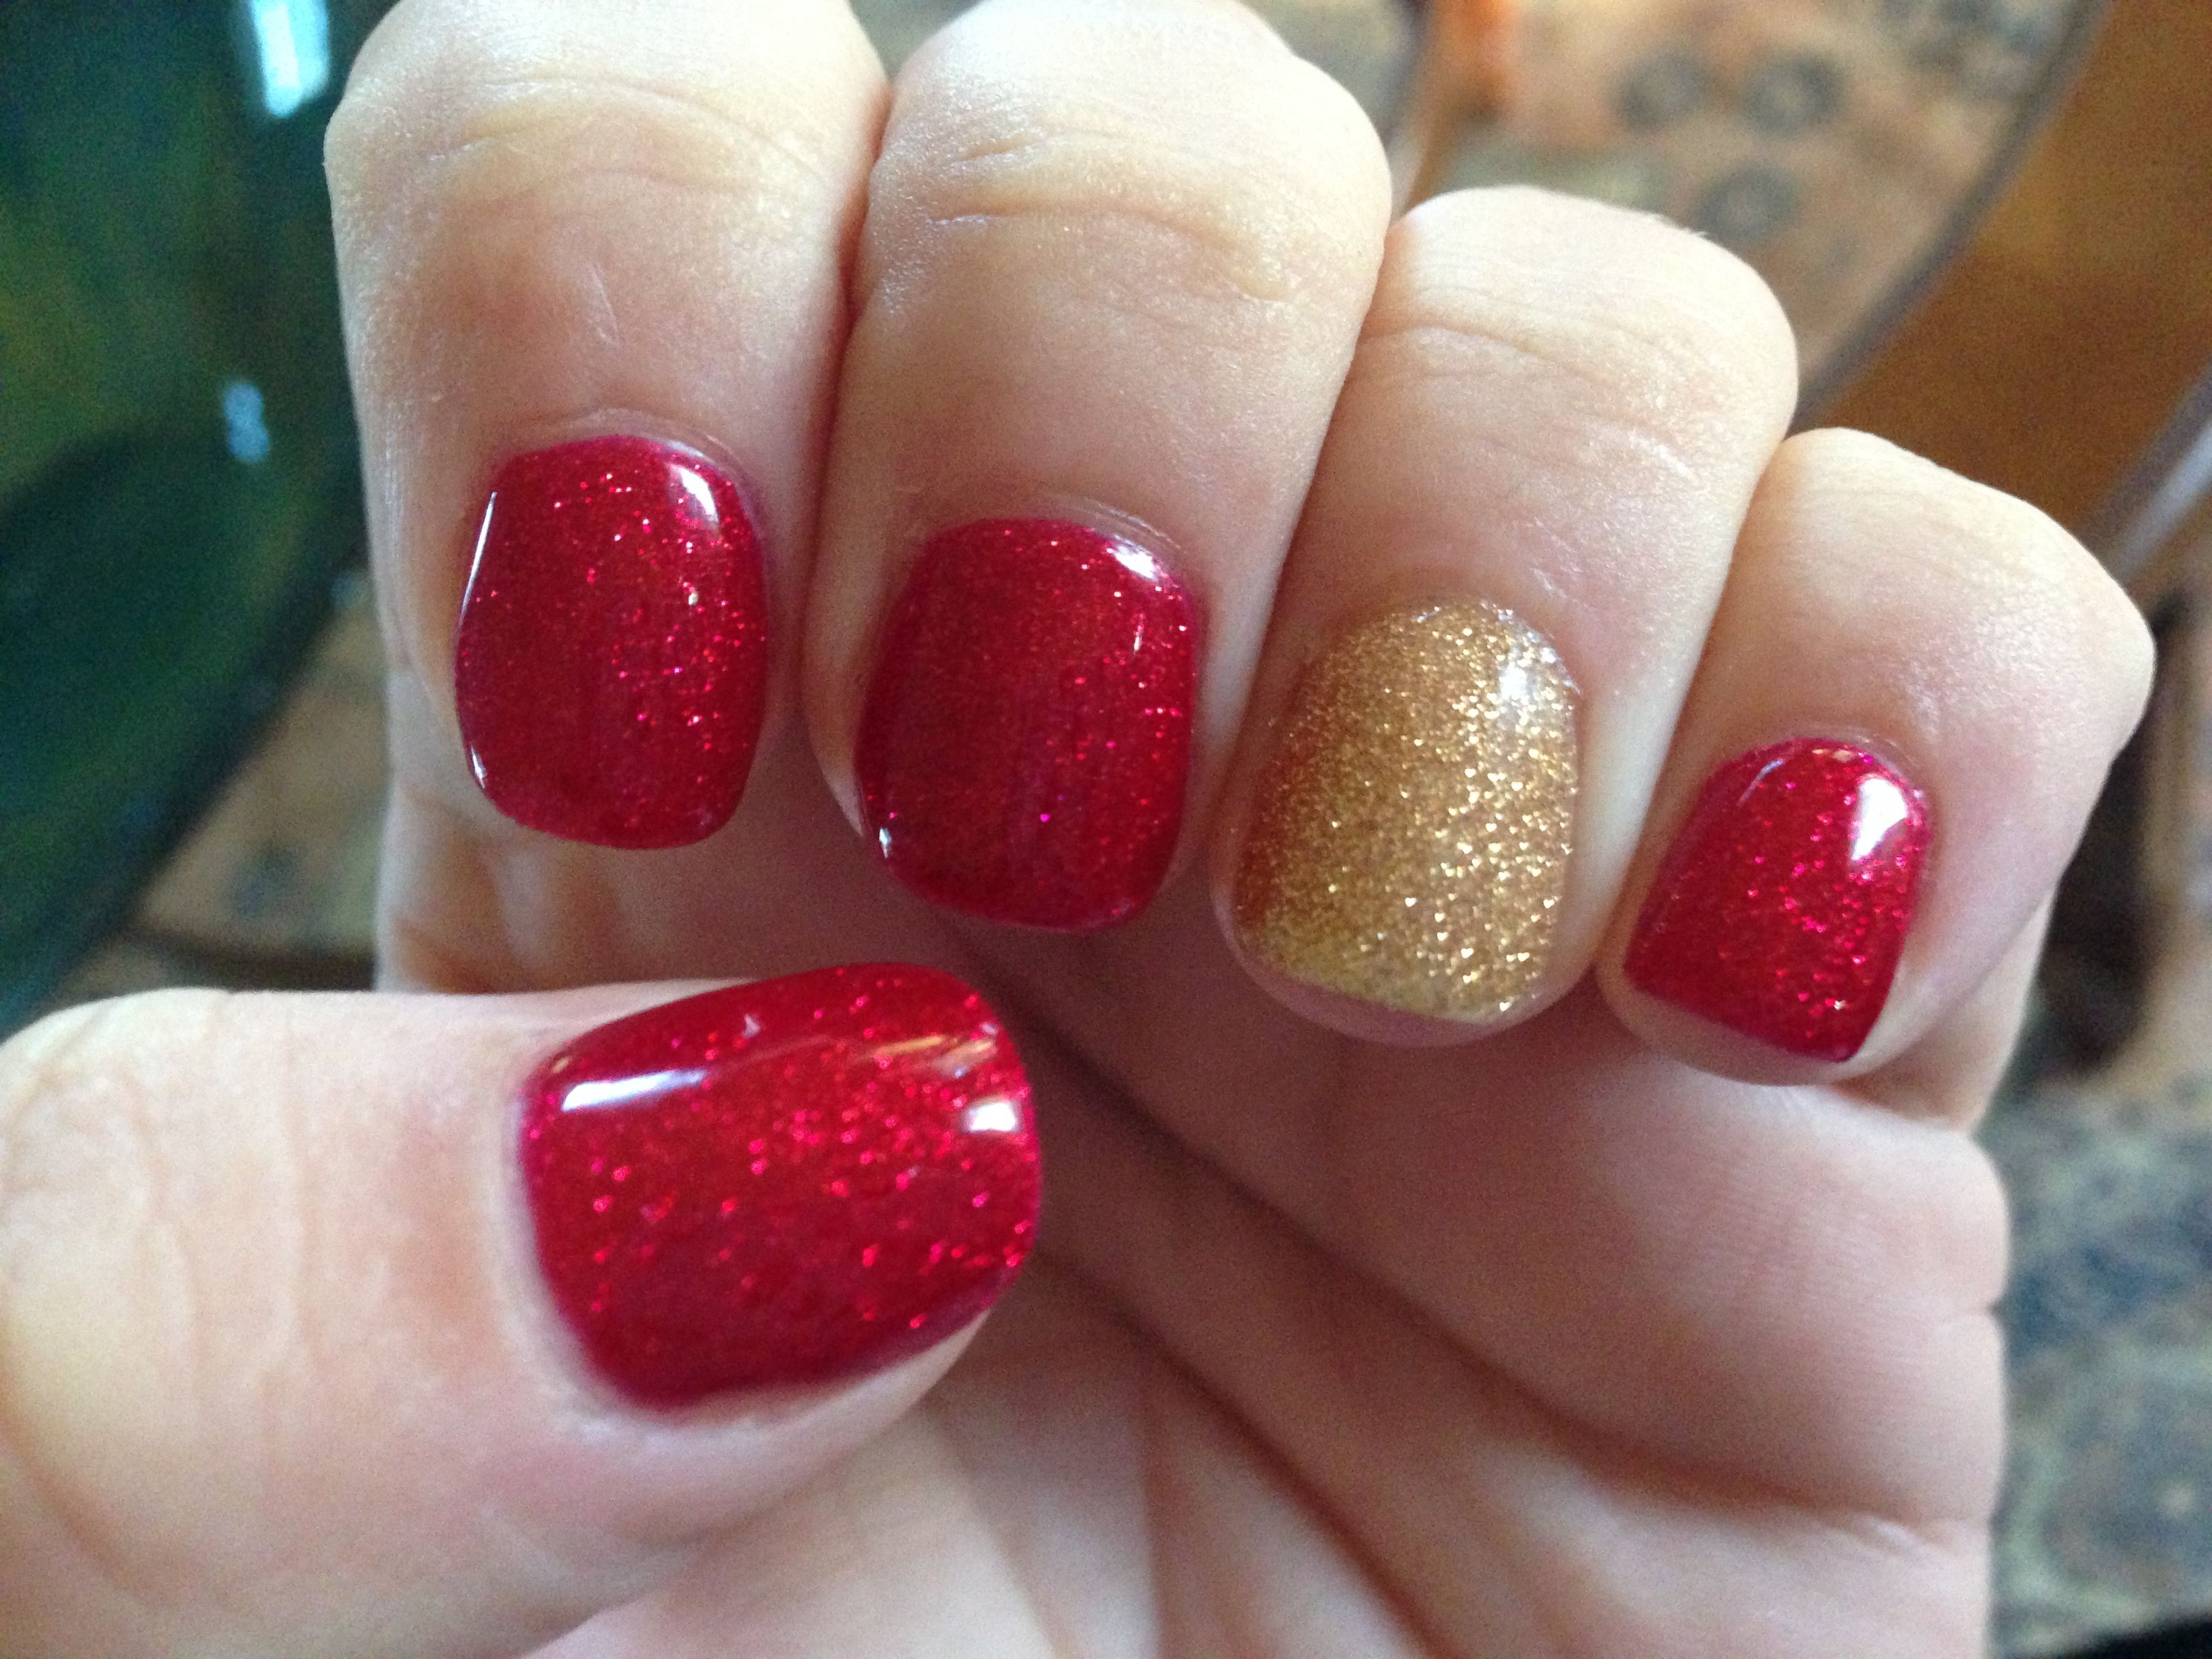 My Cnd Shellac Christmas Nails By Christy Clow Mynailtechisbetterthanyours